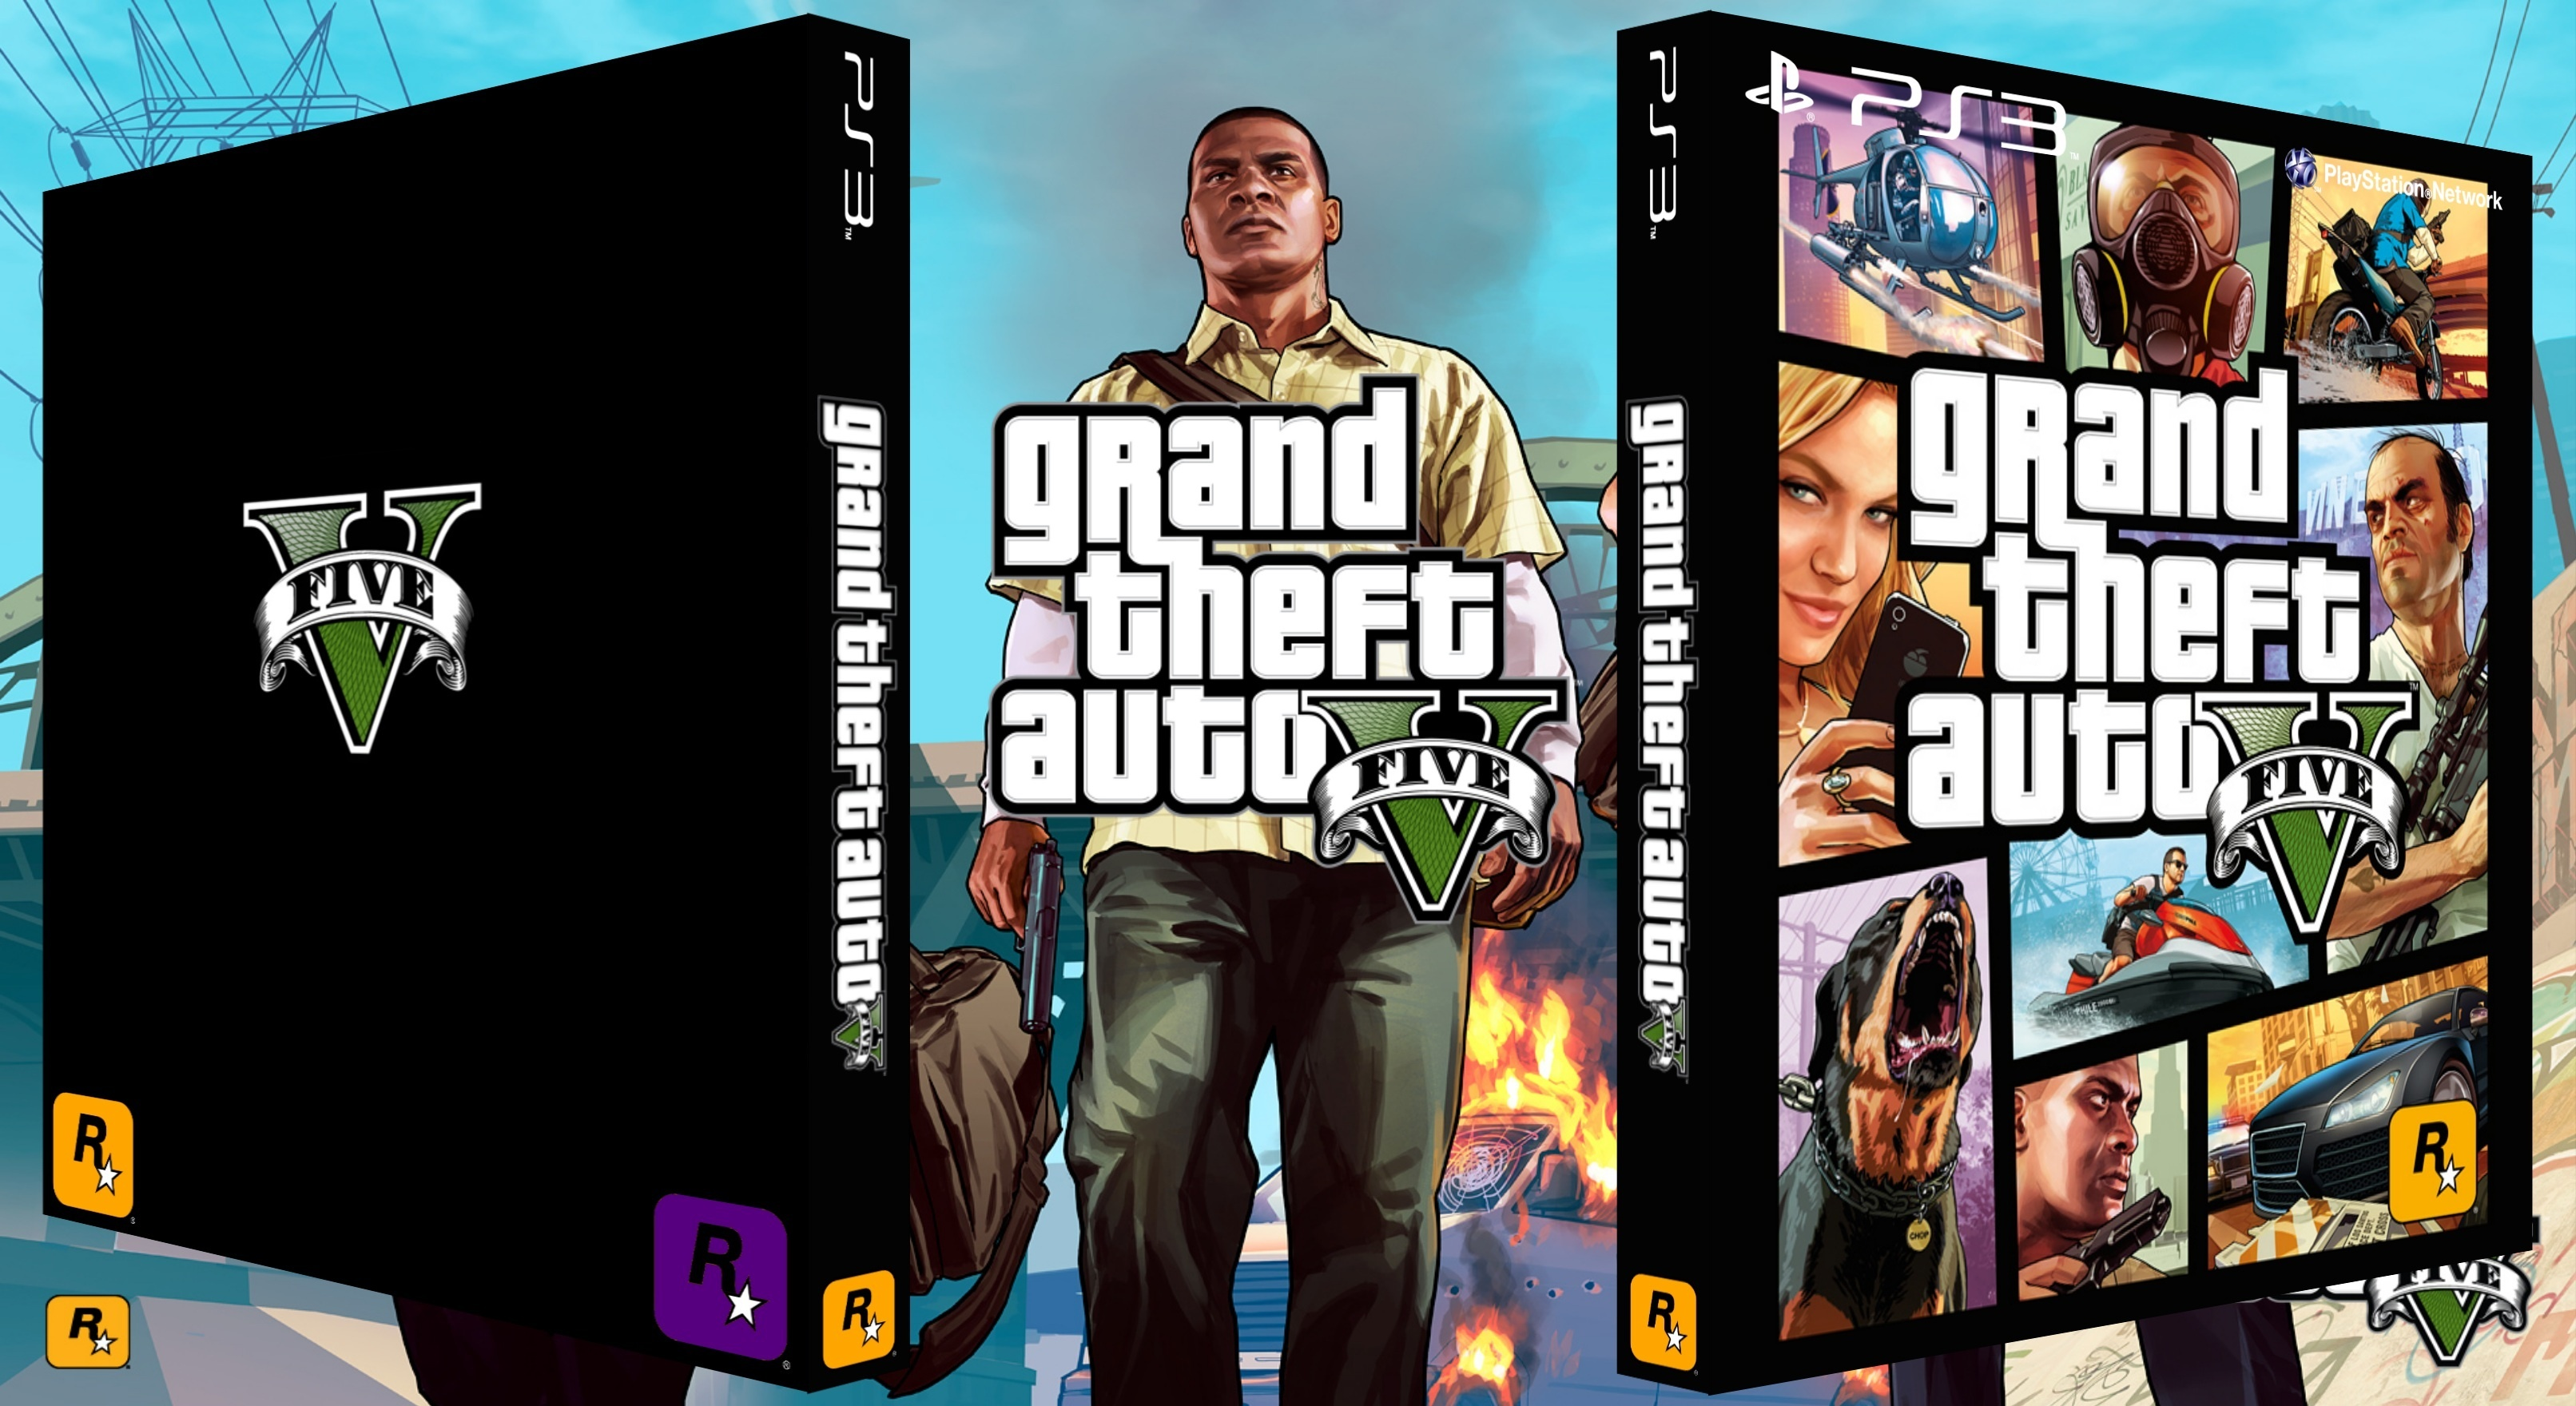 grand theft auto v download link